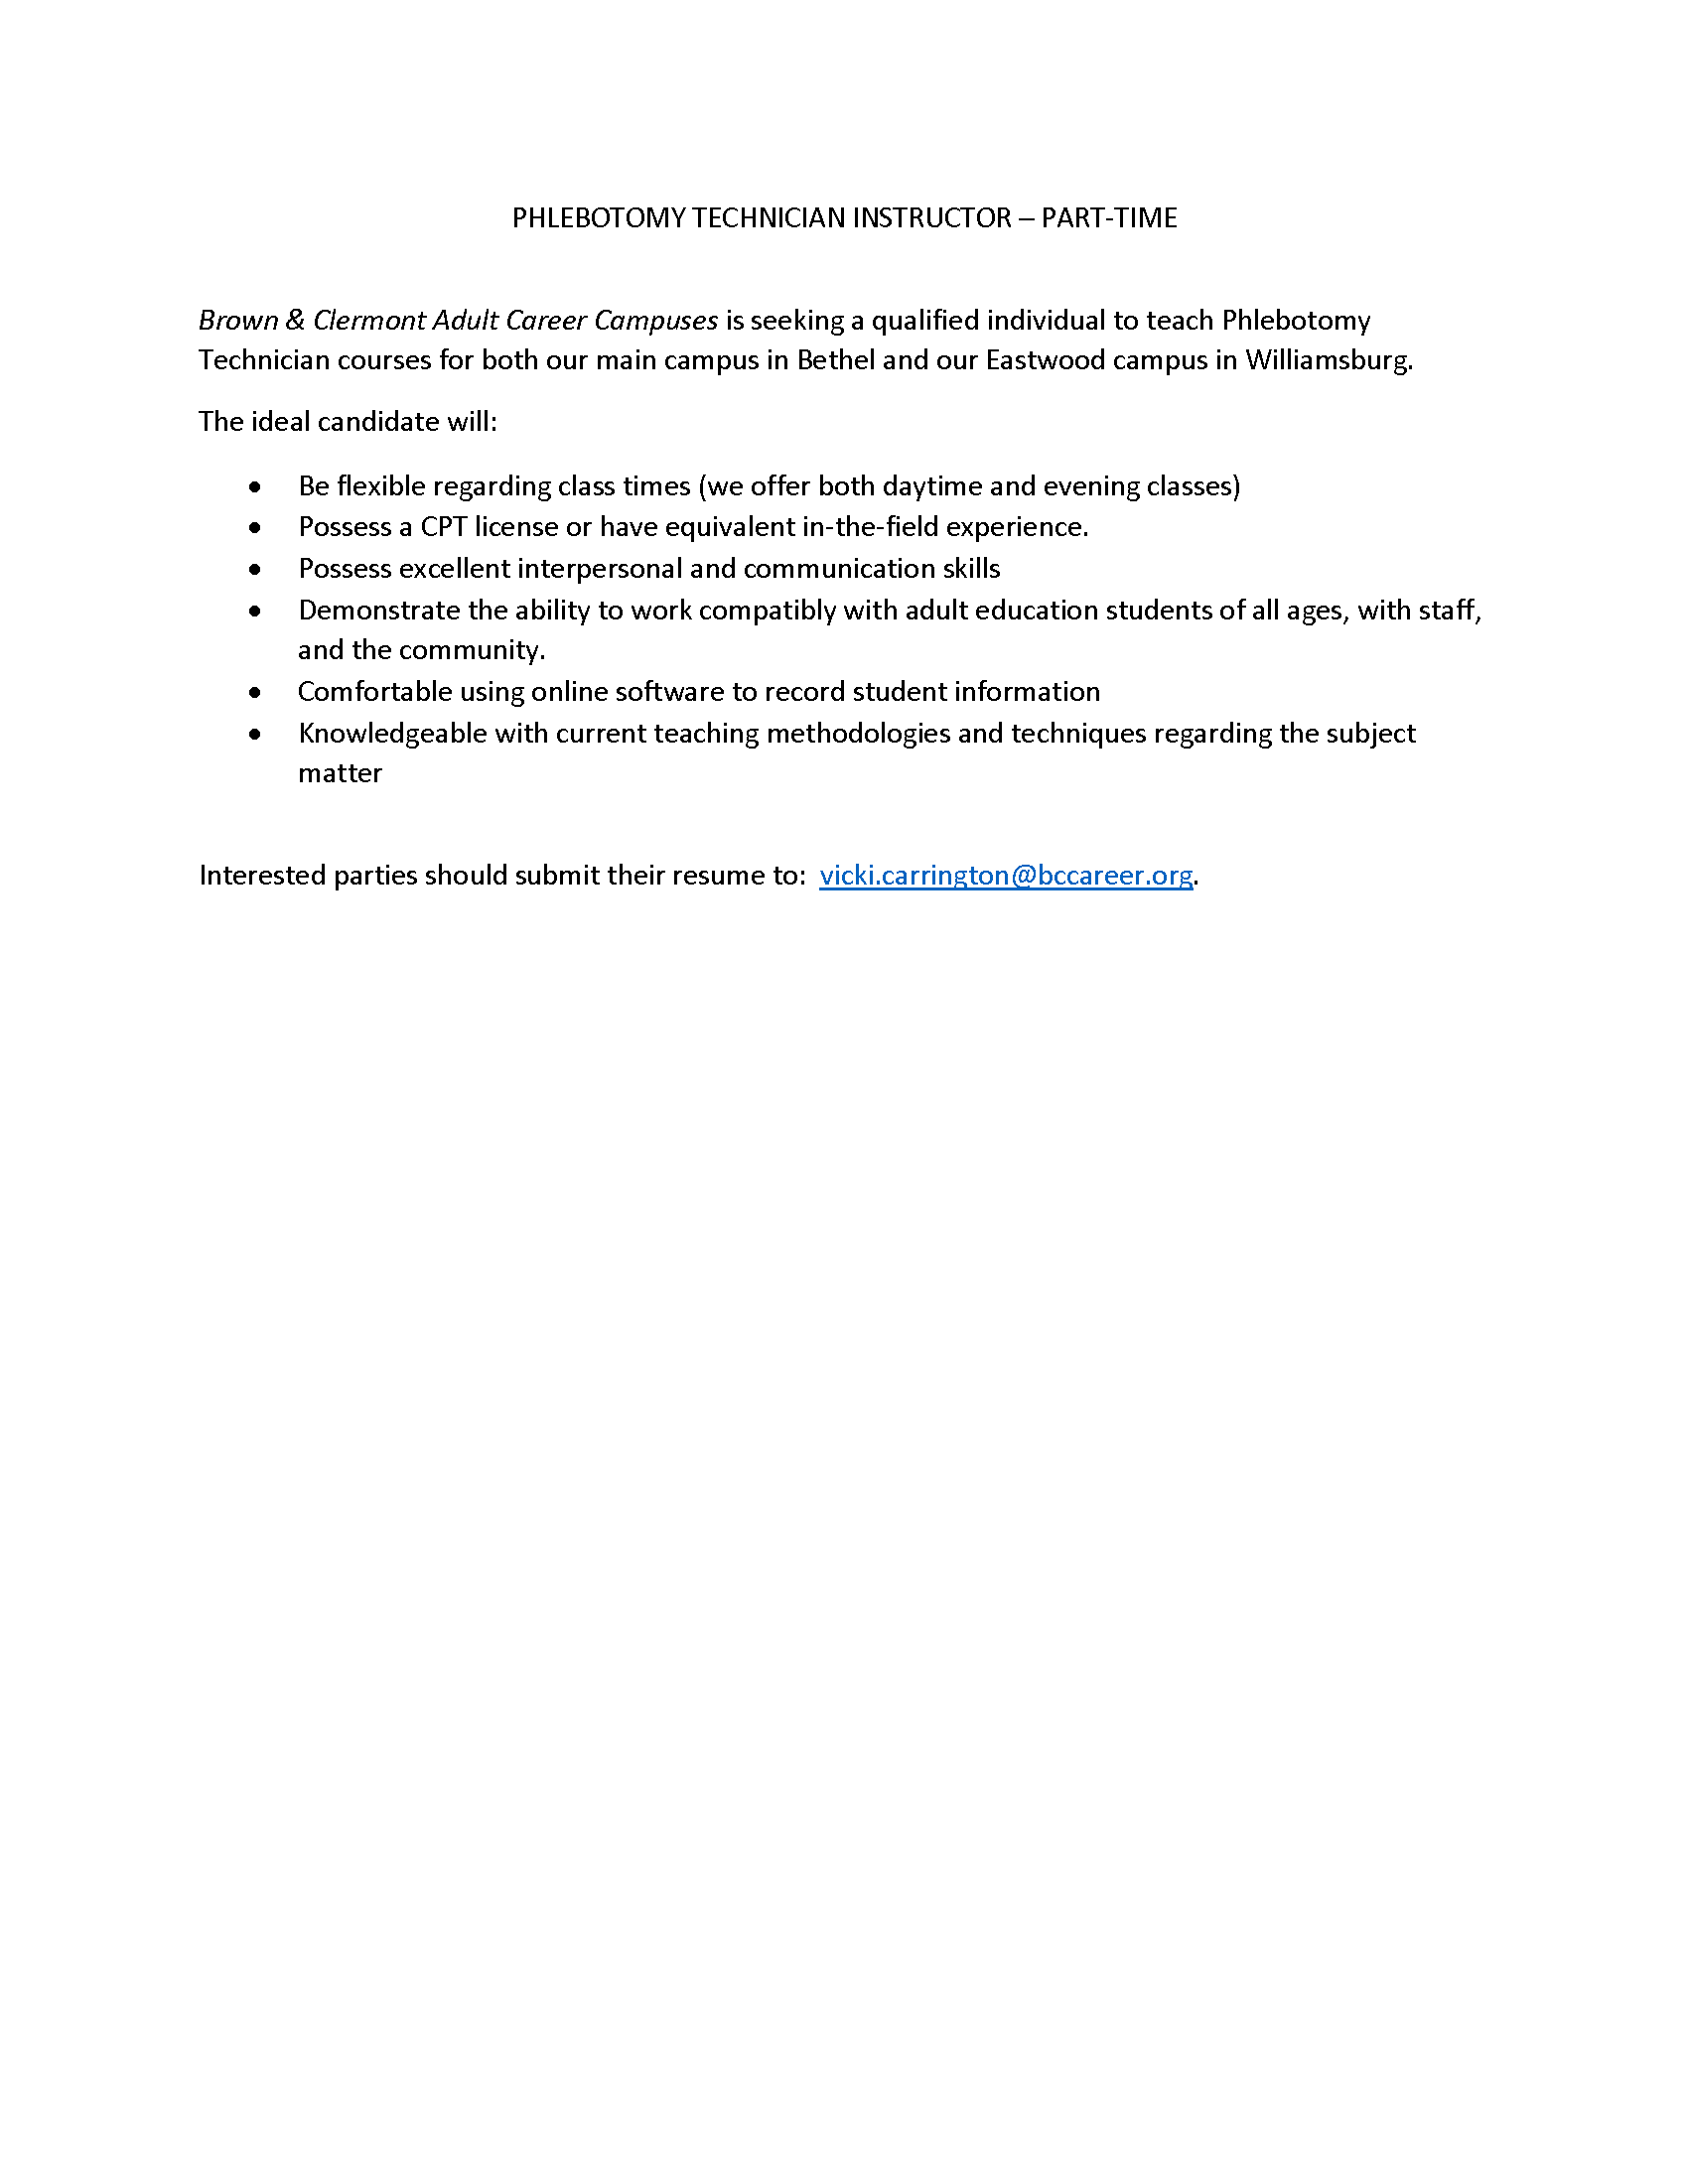 Job Listing for Phlebotomy Technician Instructor